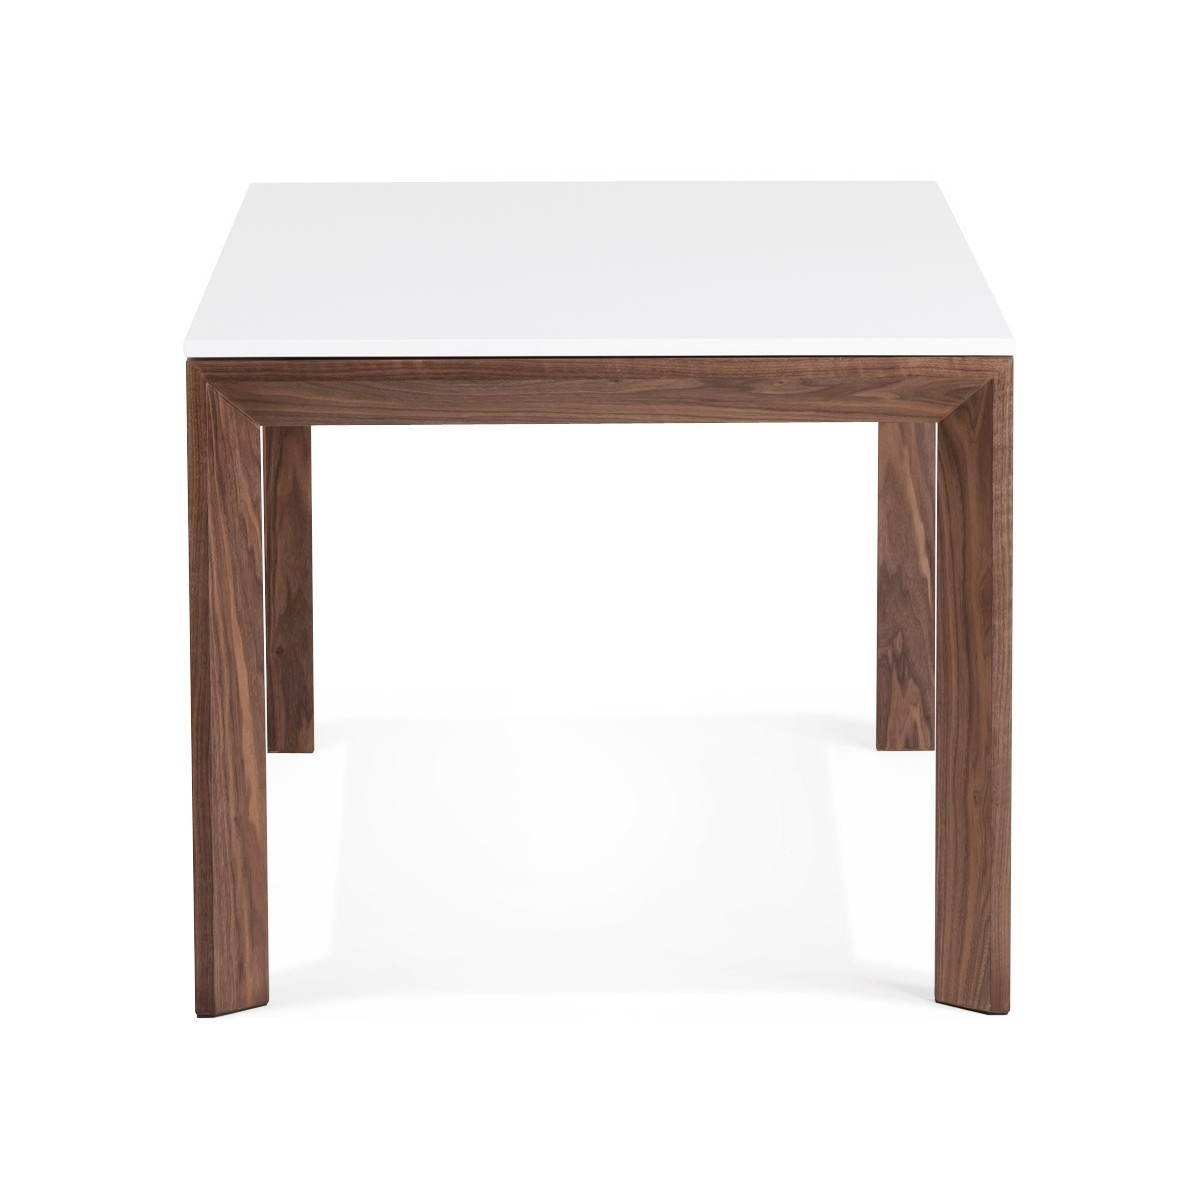 Table salle a manger avec rallonge maison design for Table salle a manger rallonge design